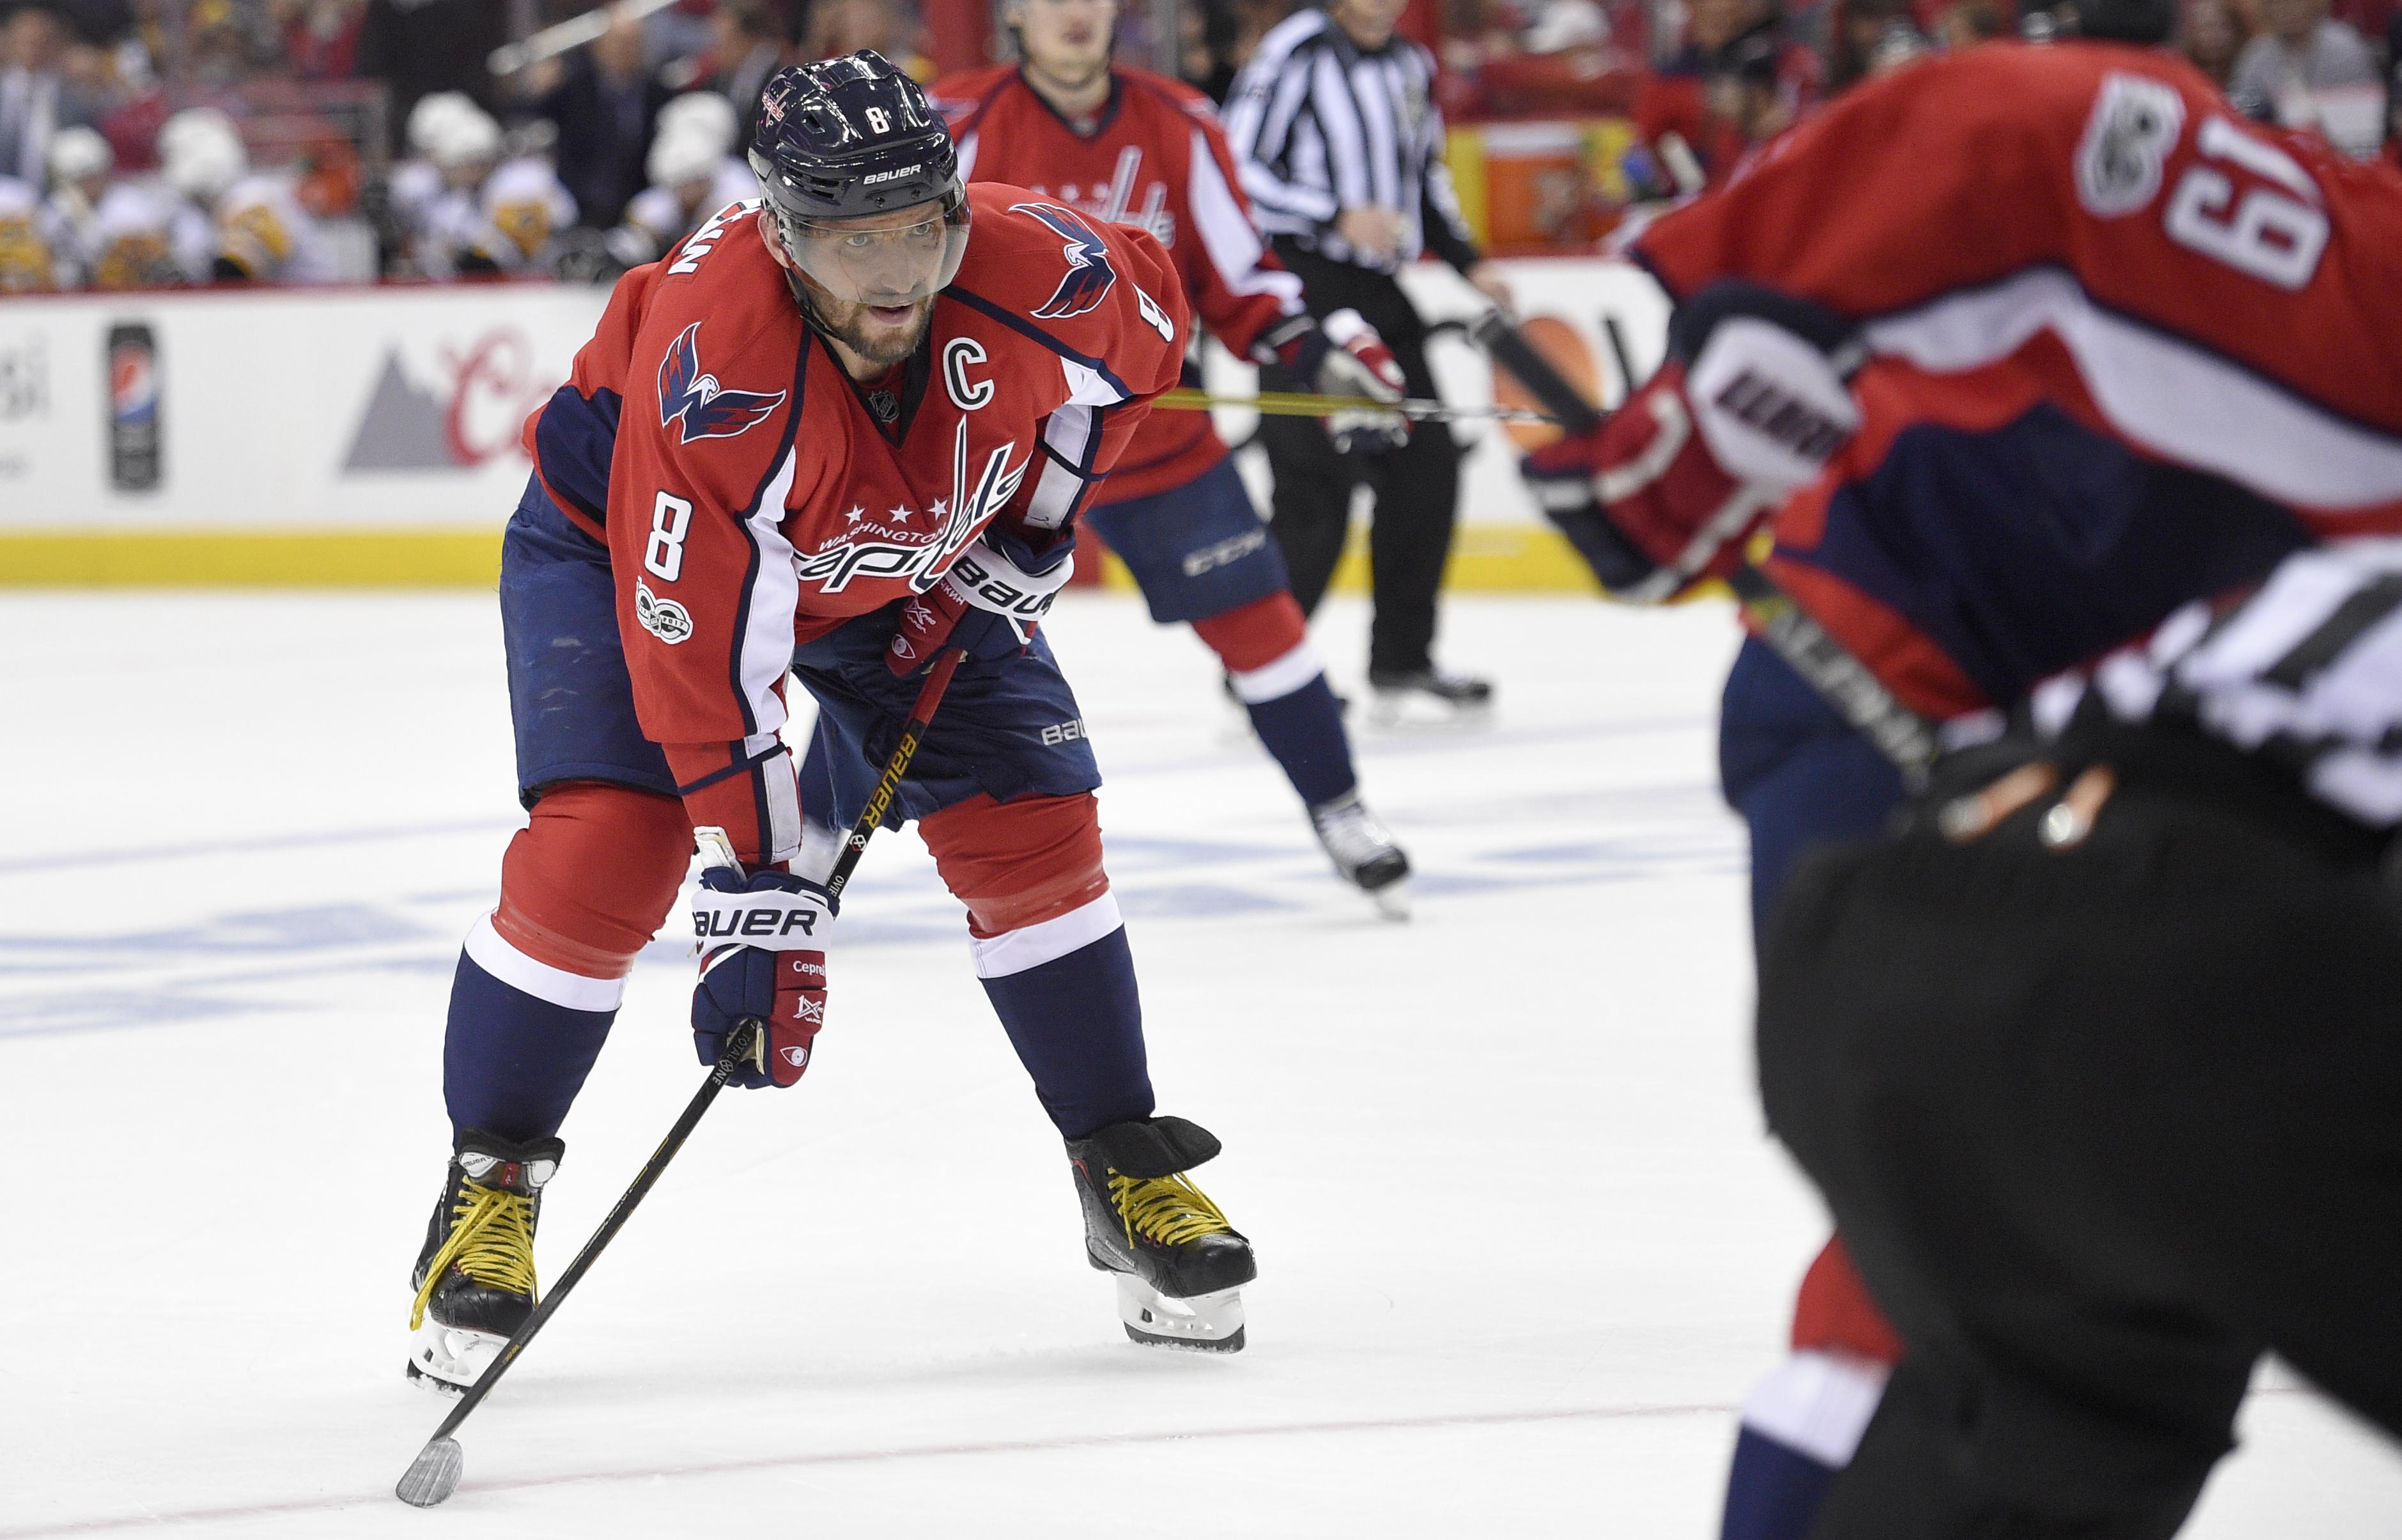 de59286e2 In this photo taken April 29, 2017, Washington Capitals left wing Alex  Ovechkin looks